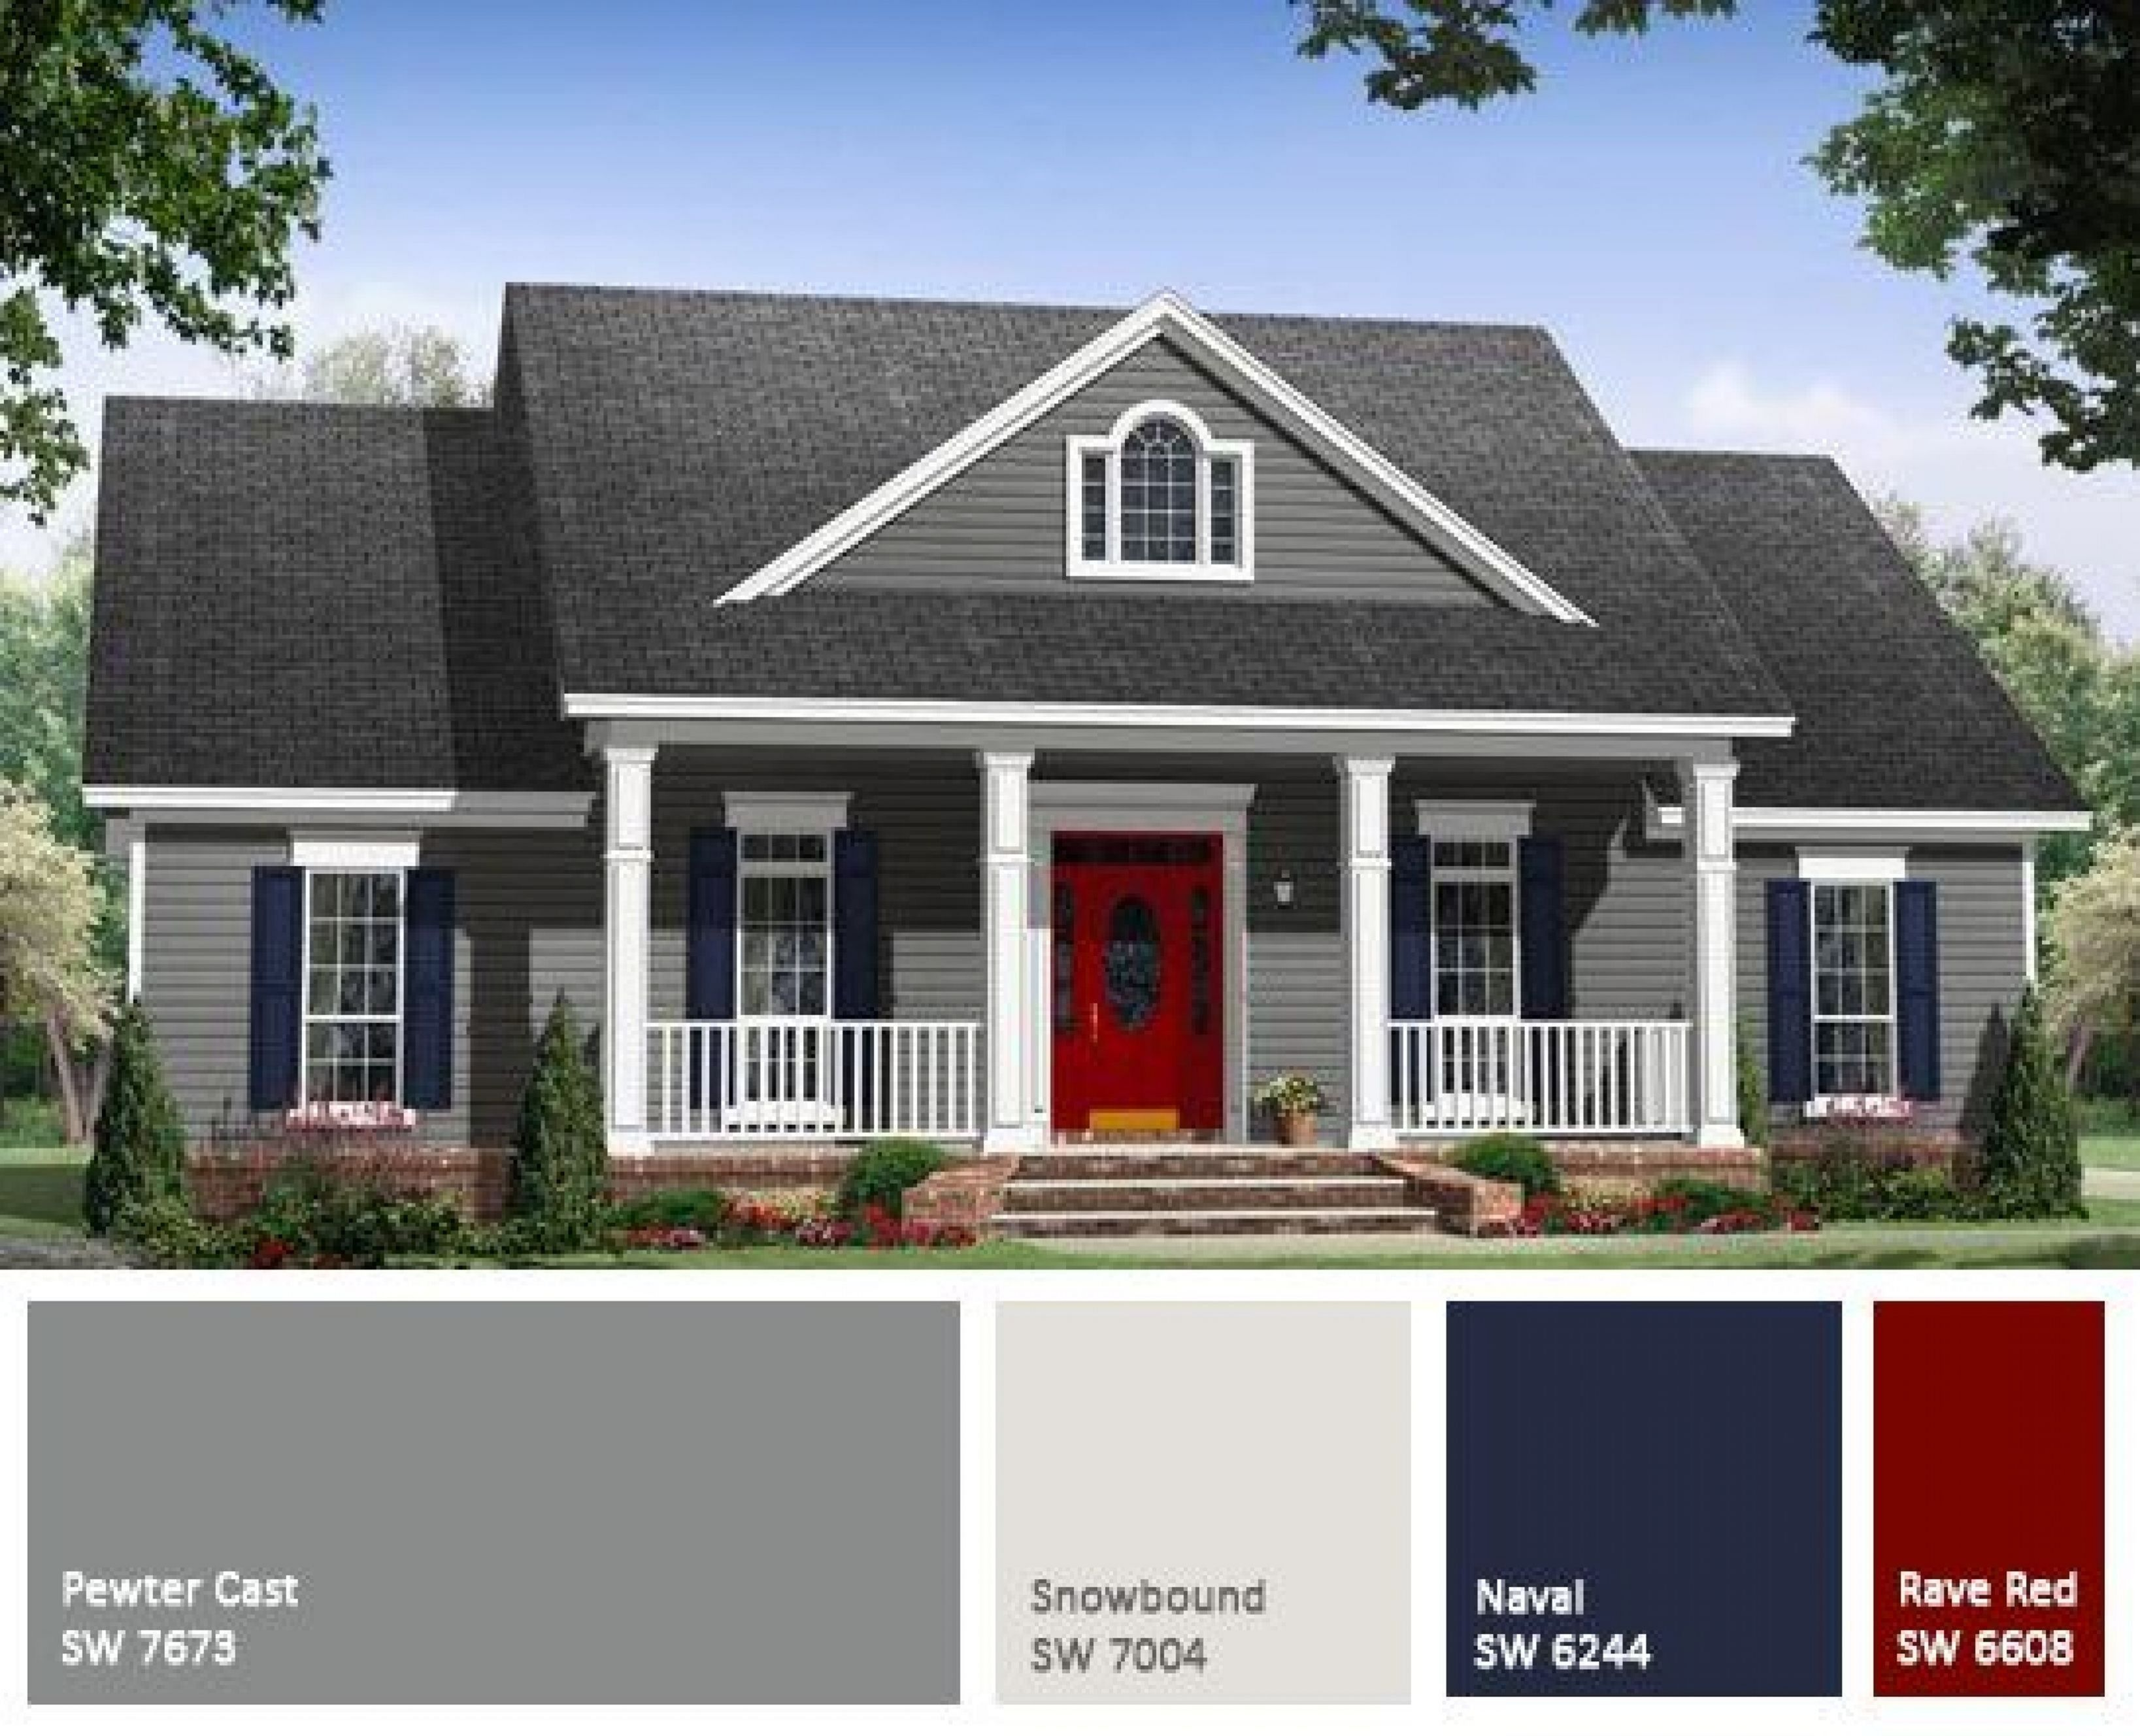 Best Exterior Home Color Schemes In 2020 Gray House Exterior Exterior Paint Colors For House House Paint Exterior